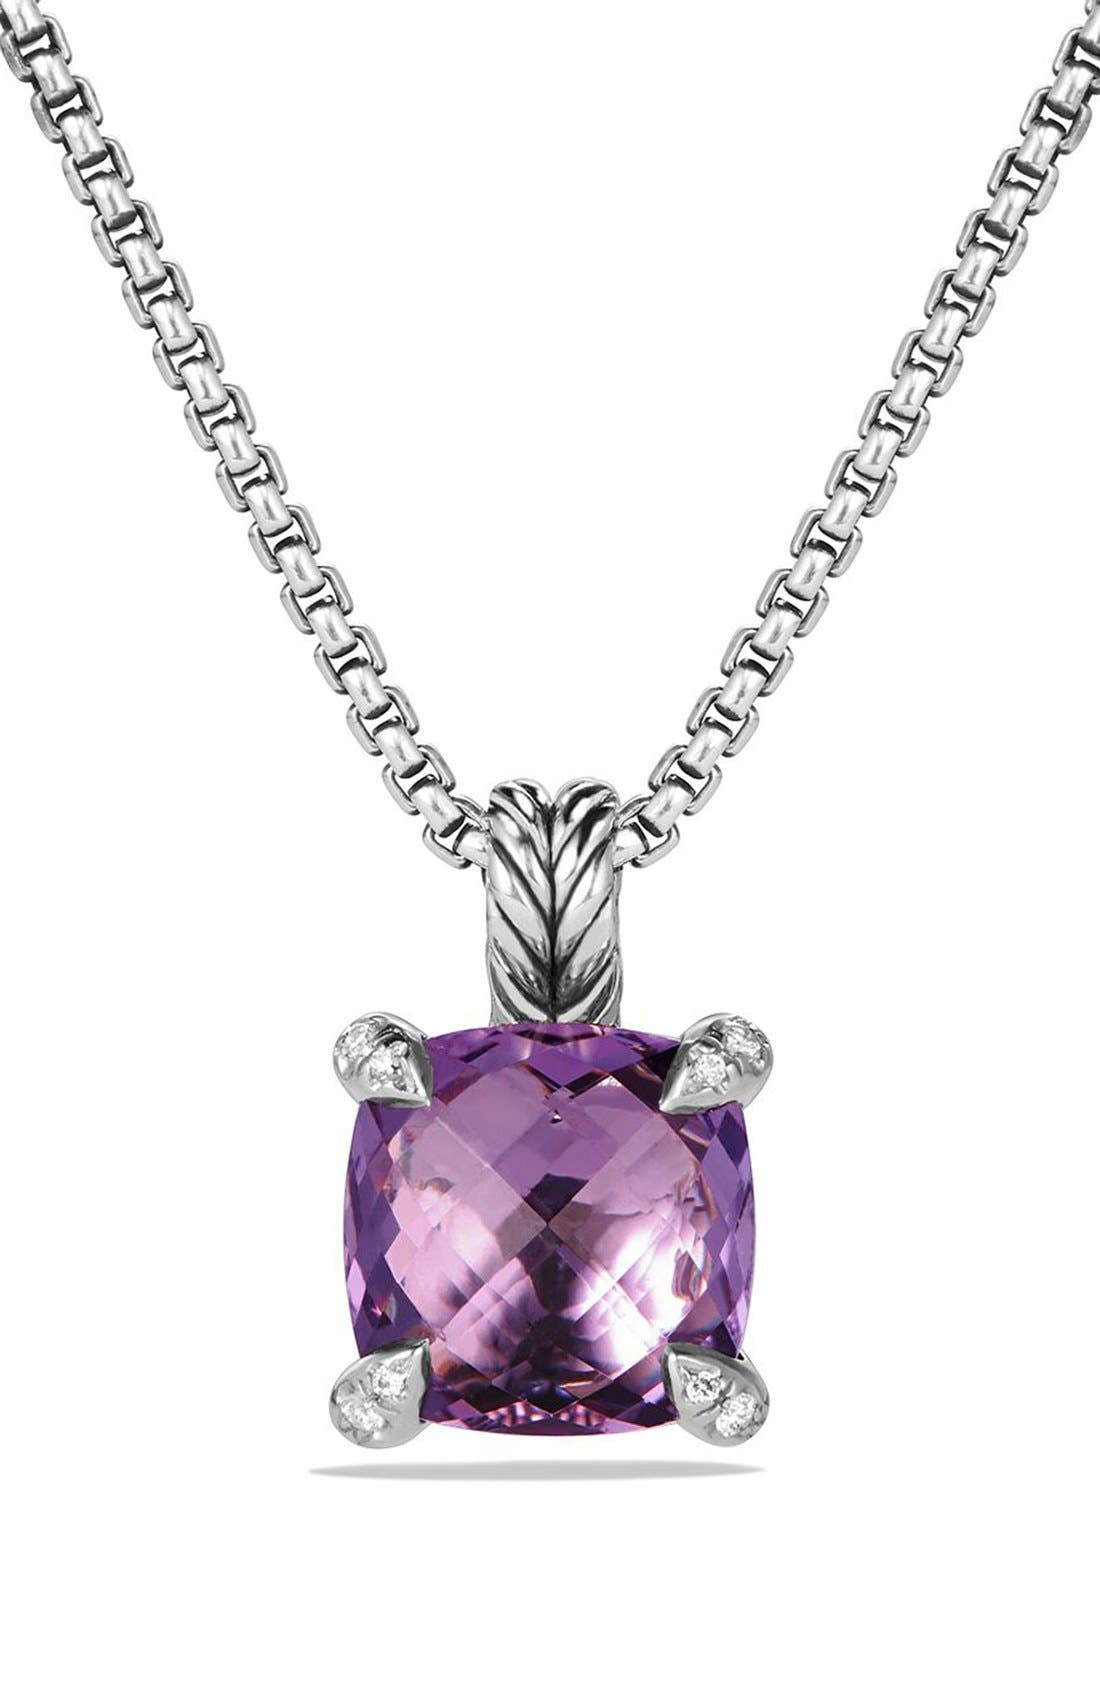 David Yurman 'Châtelaine' Pendant Necklace with Semiprecious Stone & Diamonds